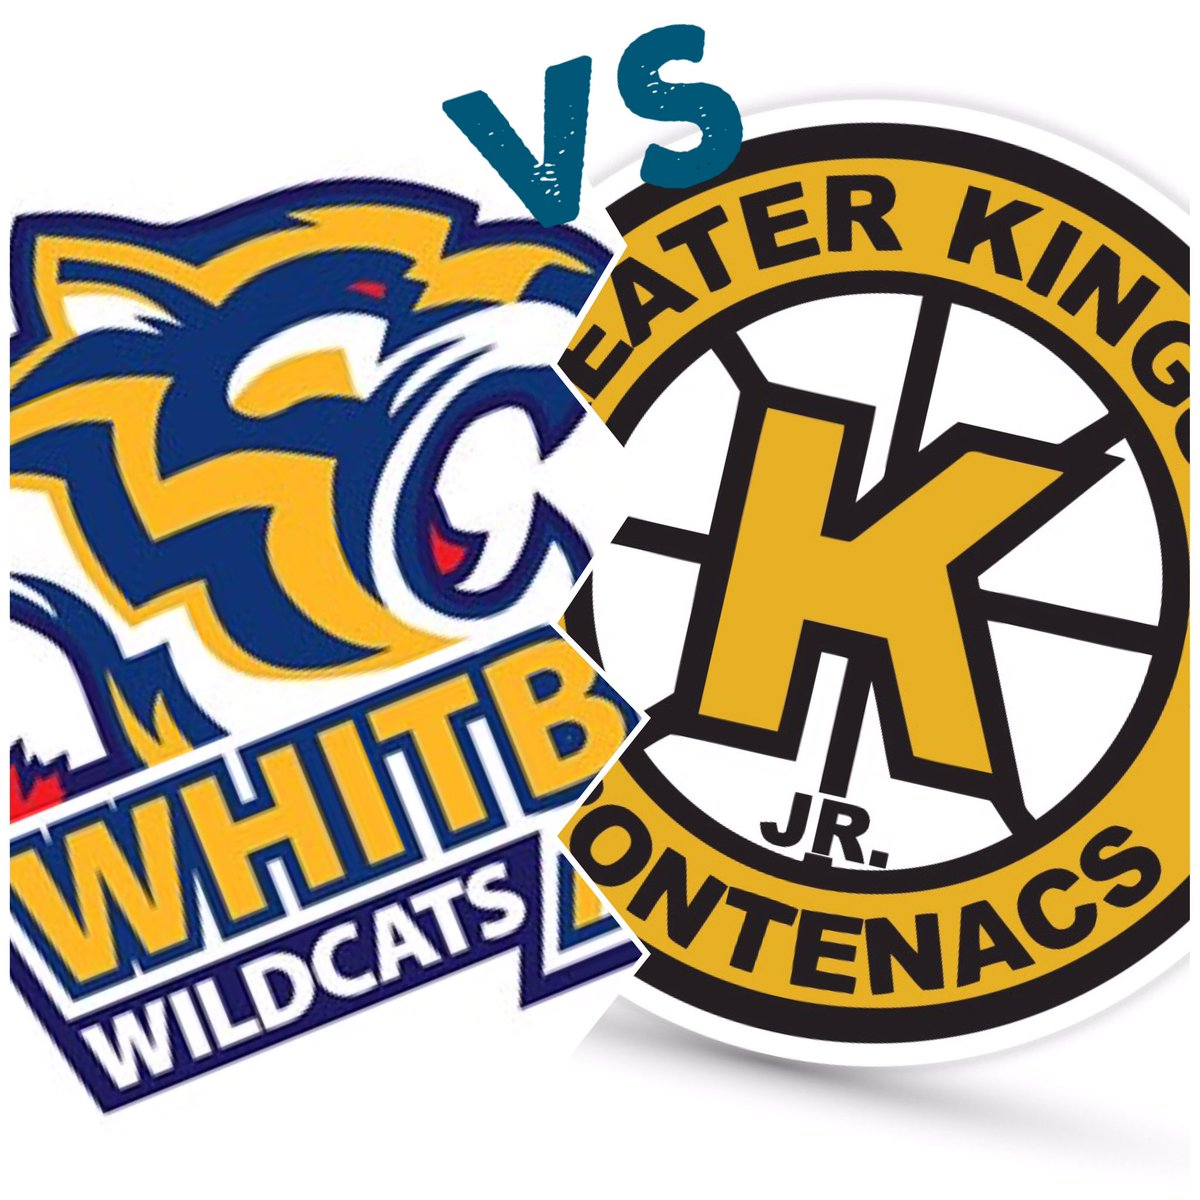 🚨 GAME DAY 🚨  @WhitbyAAAMidget is back at it today as we travel to the INVISTA Centre in Kingston to take on @GKMidgetHockey for Game 2   Puck drops at 8:45 PM  #ThisIsWhyWePlay  #OnTheRoadAgain